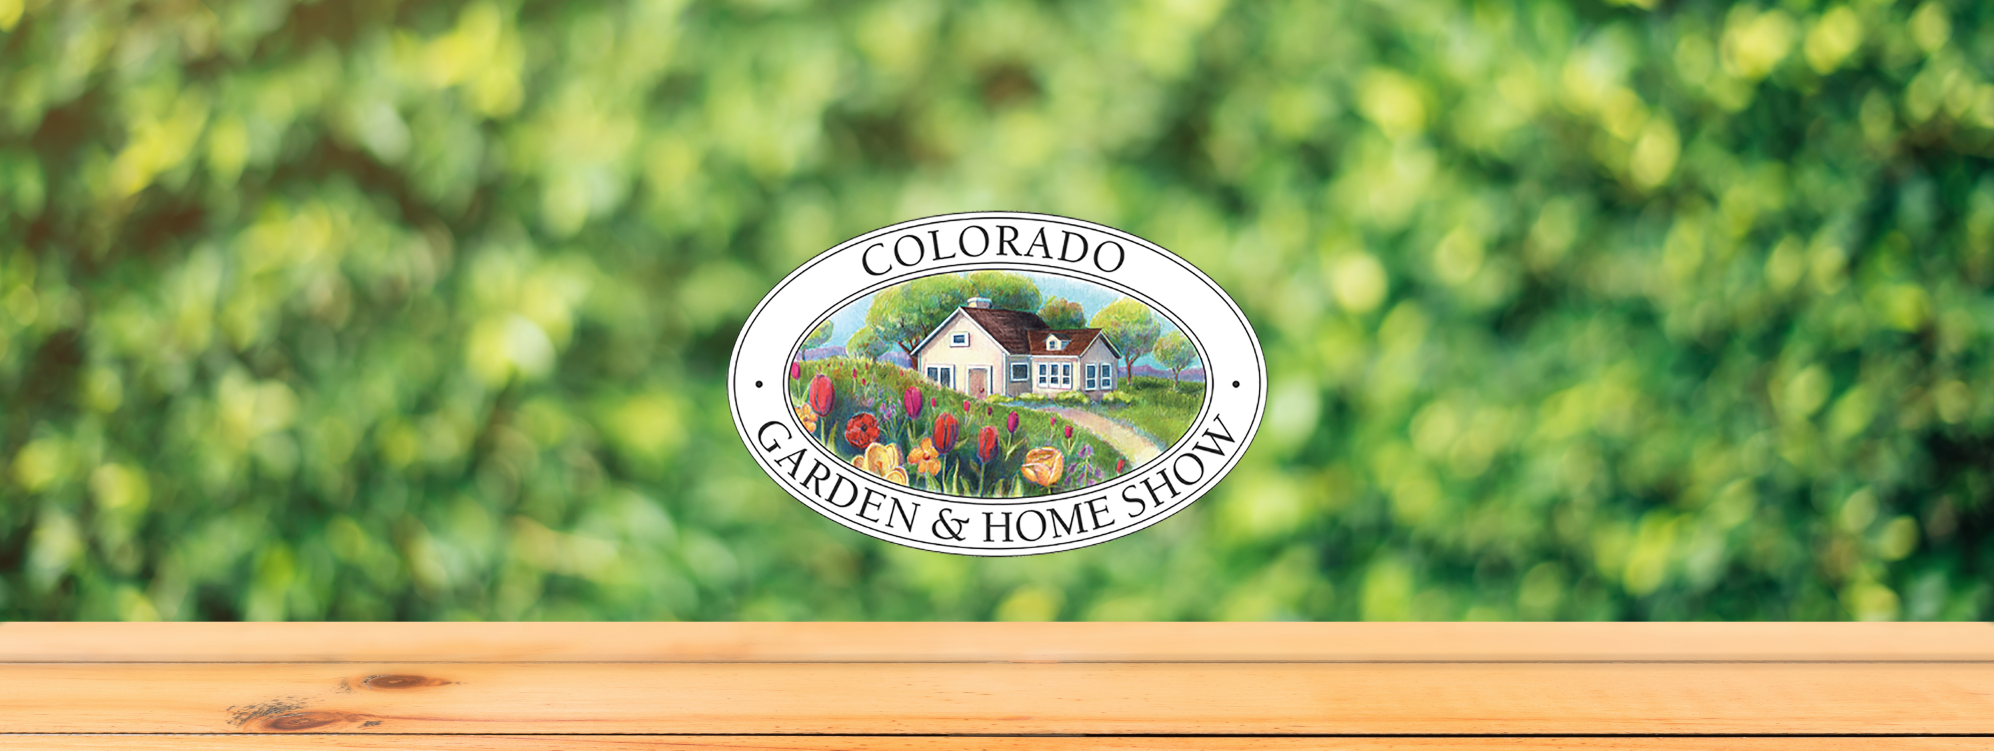 Colorado garden home show 2018 gardening and home improvement Colorado home and garden show